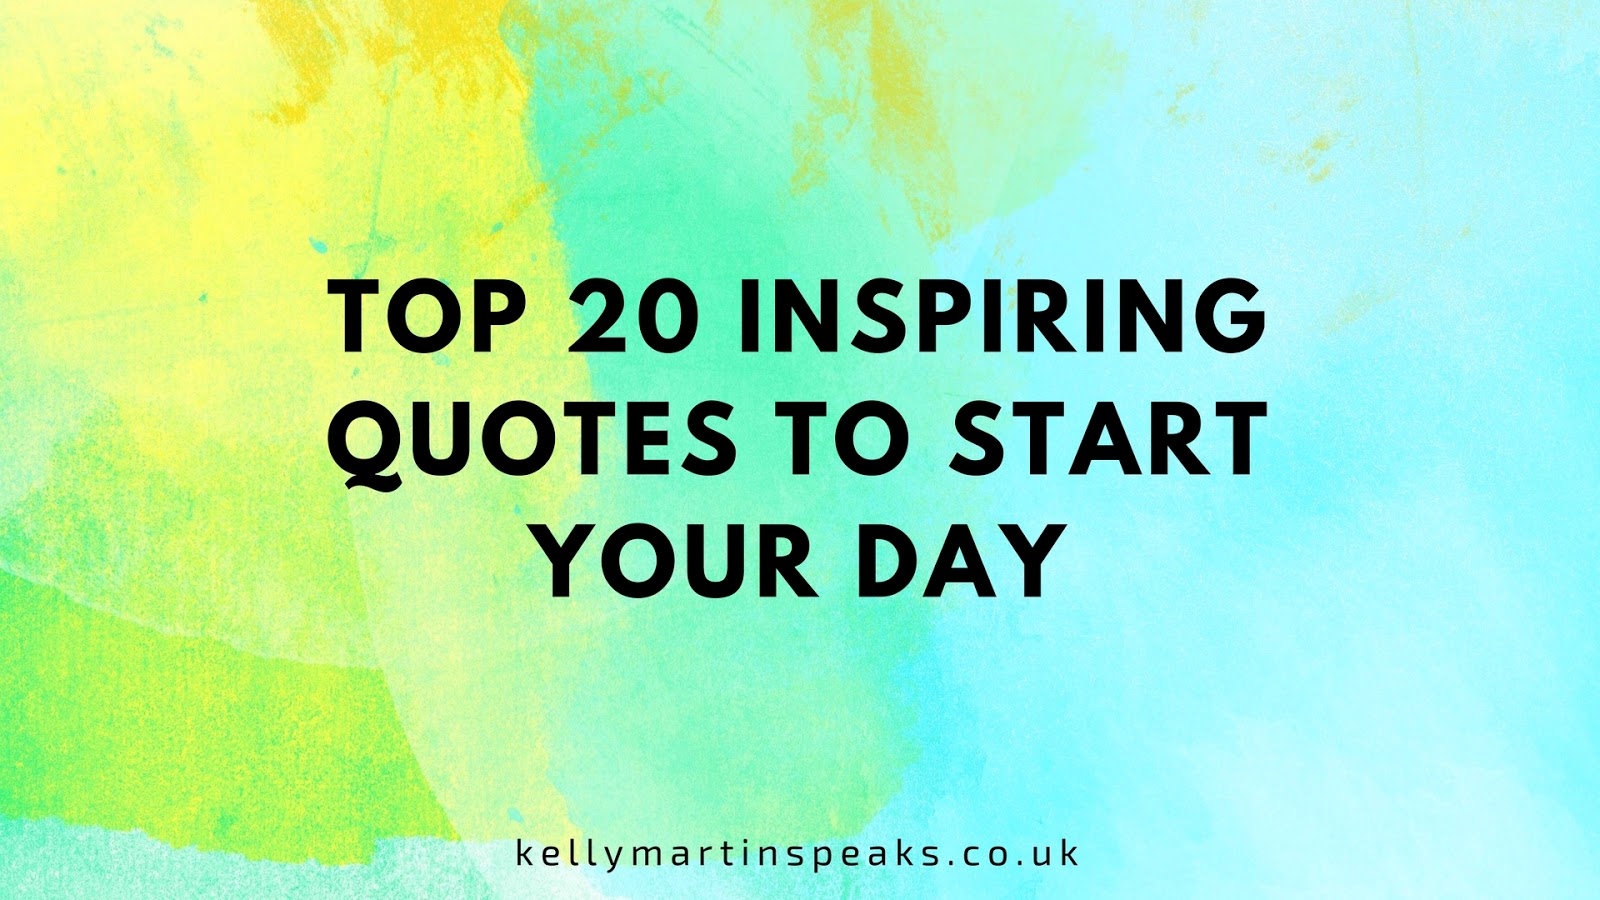 Top Quotes Top 20 Inspiring Quotes To Start Your Day  Kelly Martin Speaks